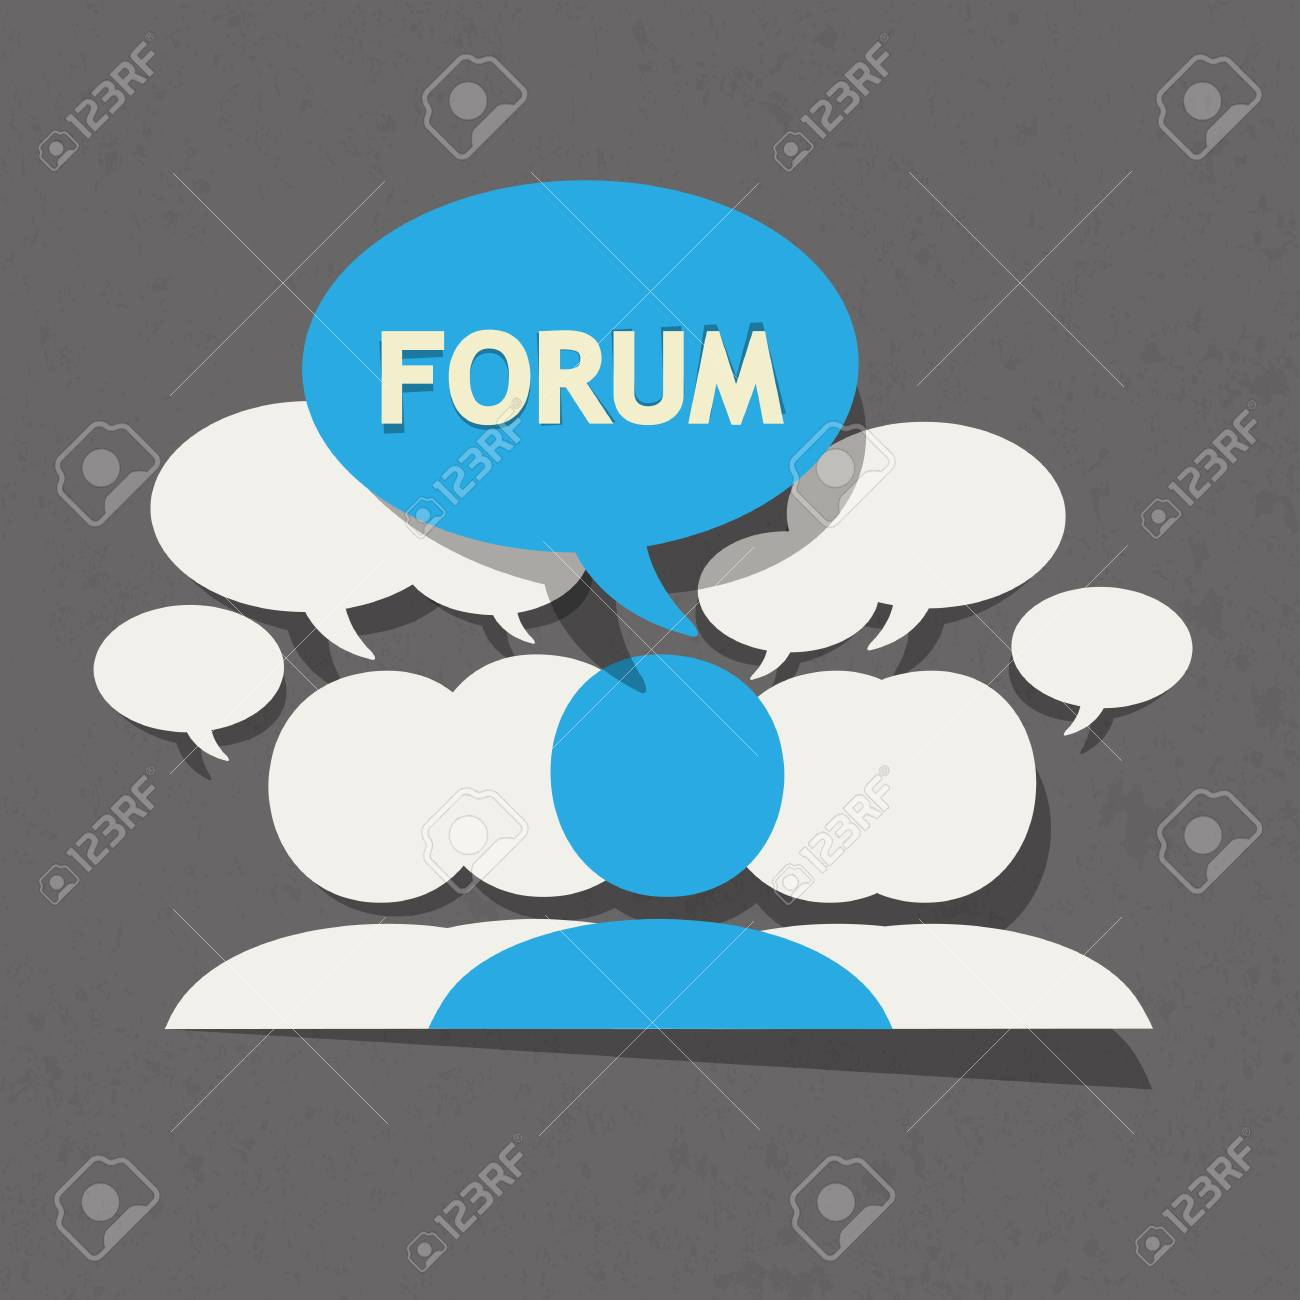 Forum group with speech bubble Stock Vector - 22748738